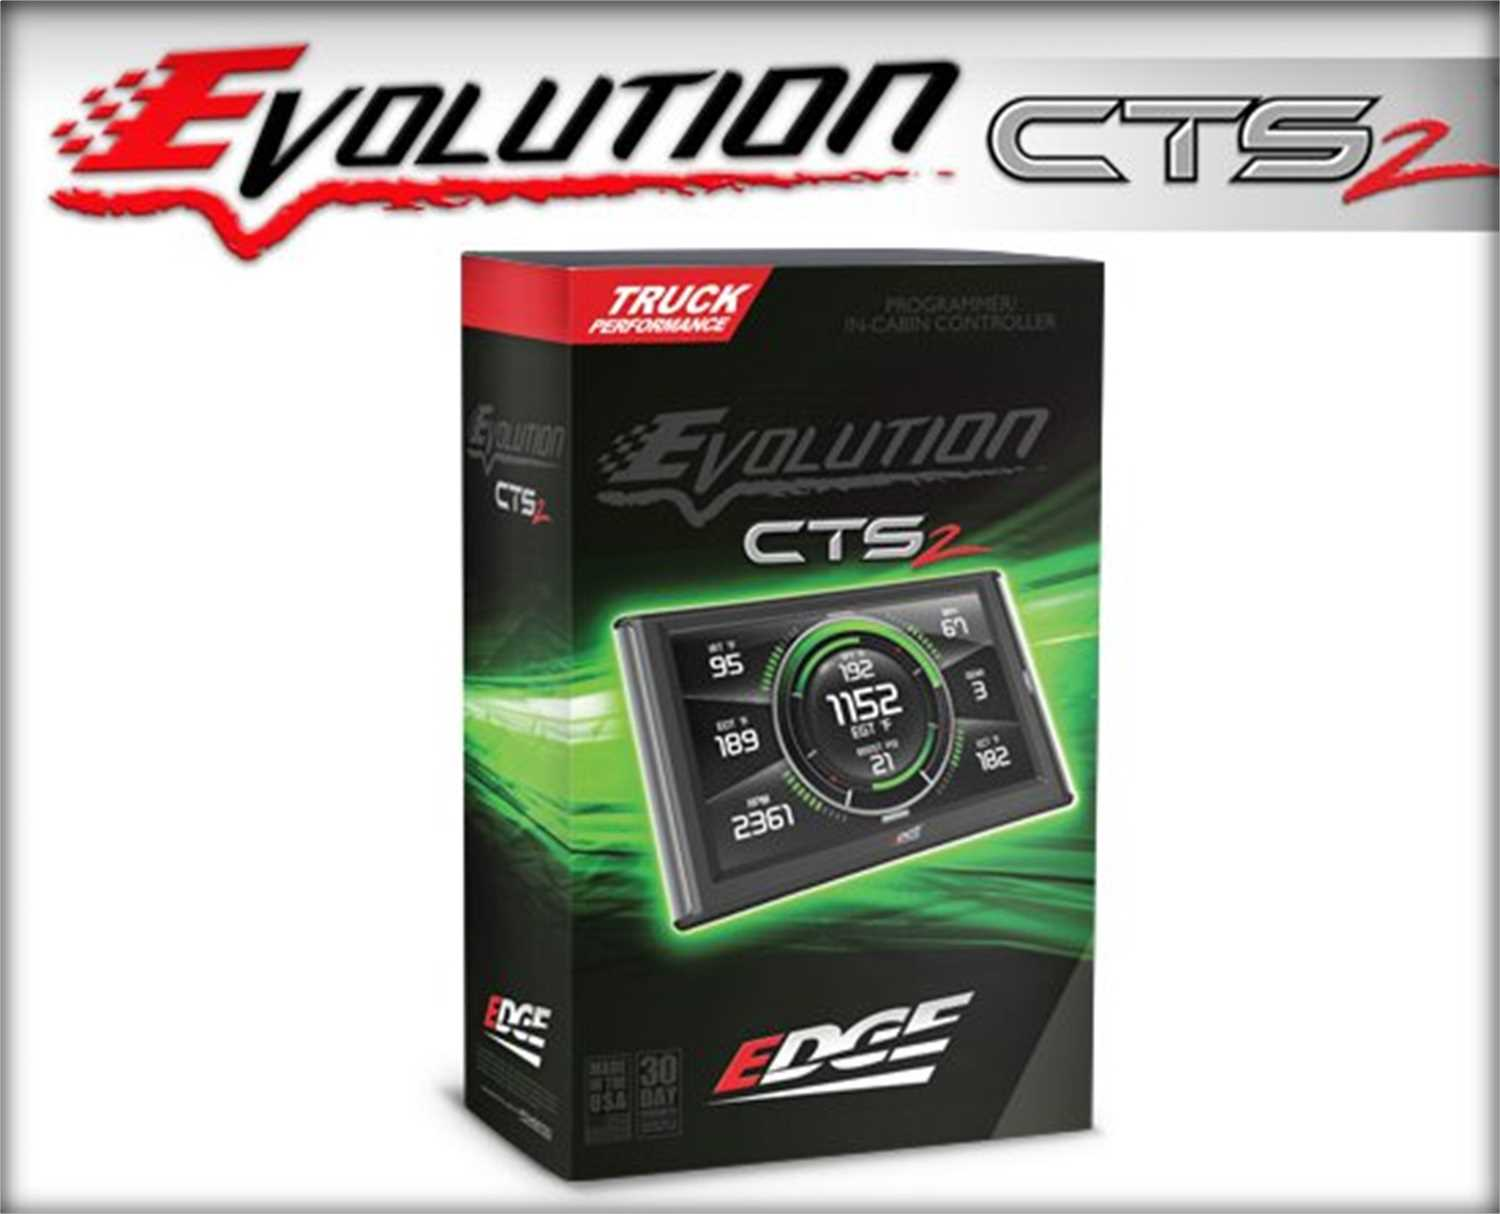 Edge Products CTS2 Diesel Evolution Programmer 85401